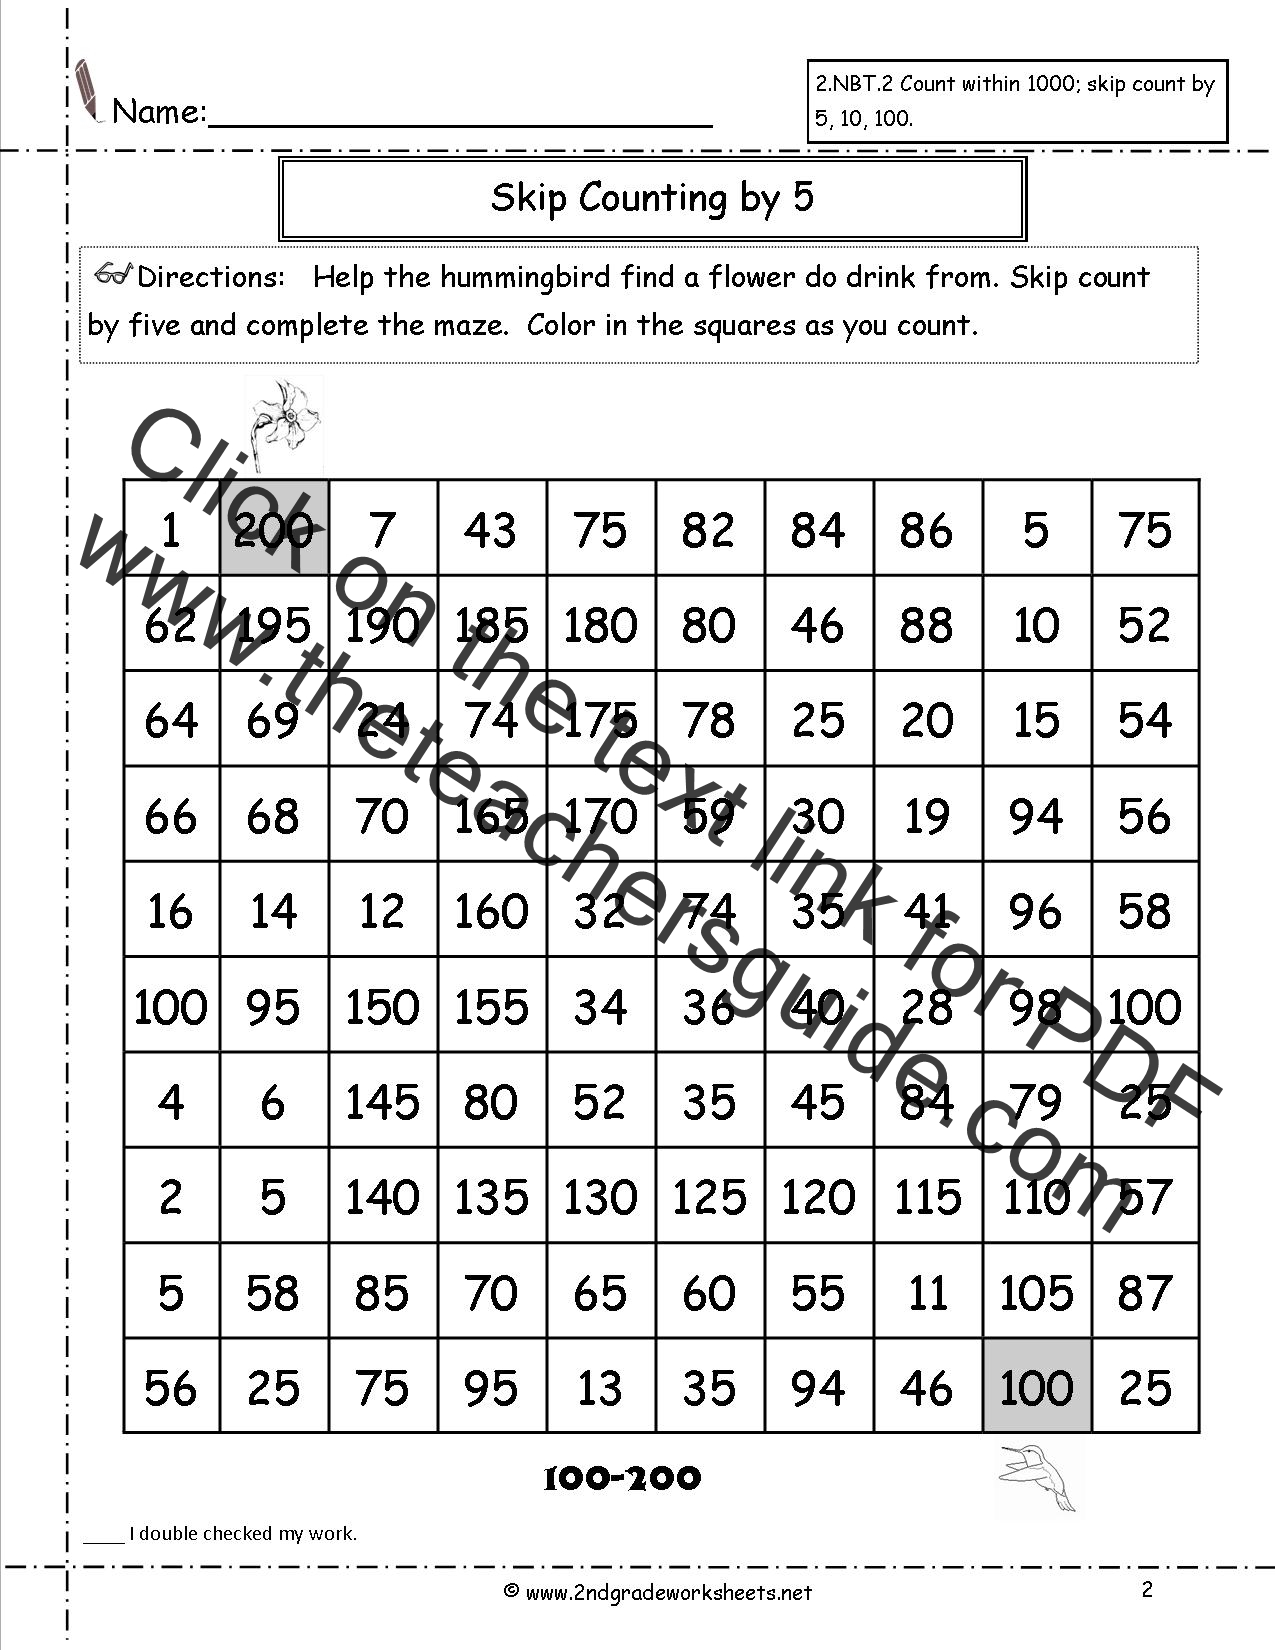 Worksheets Skip Counting Worksheets free skip counting worksheets count by 5 maze